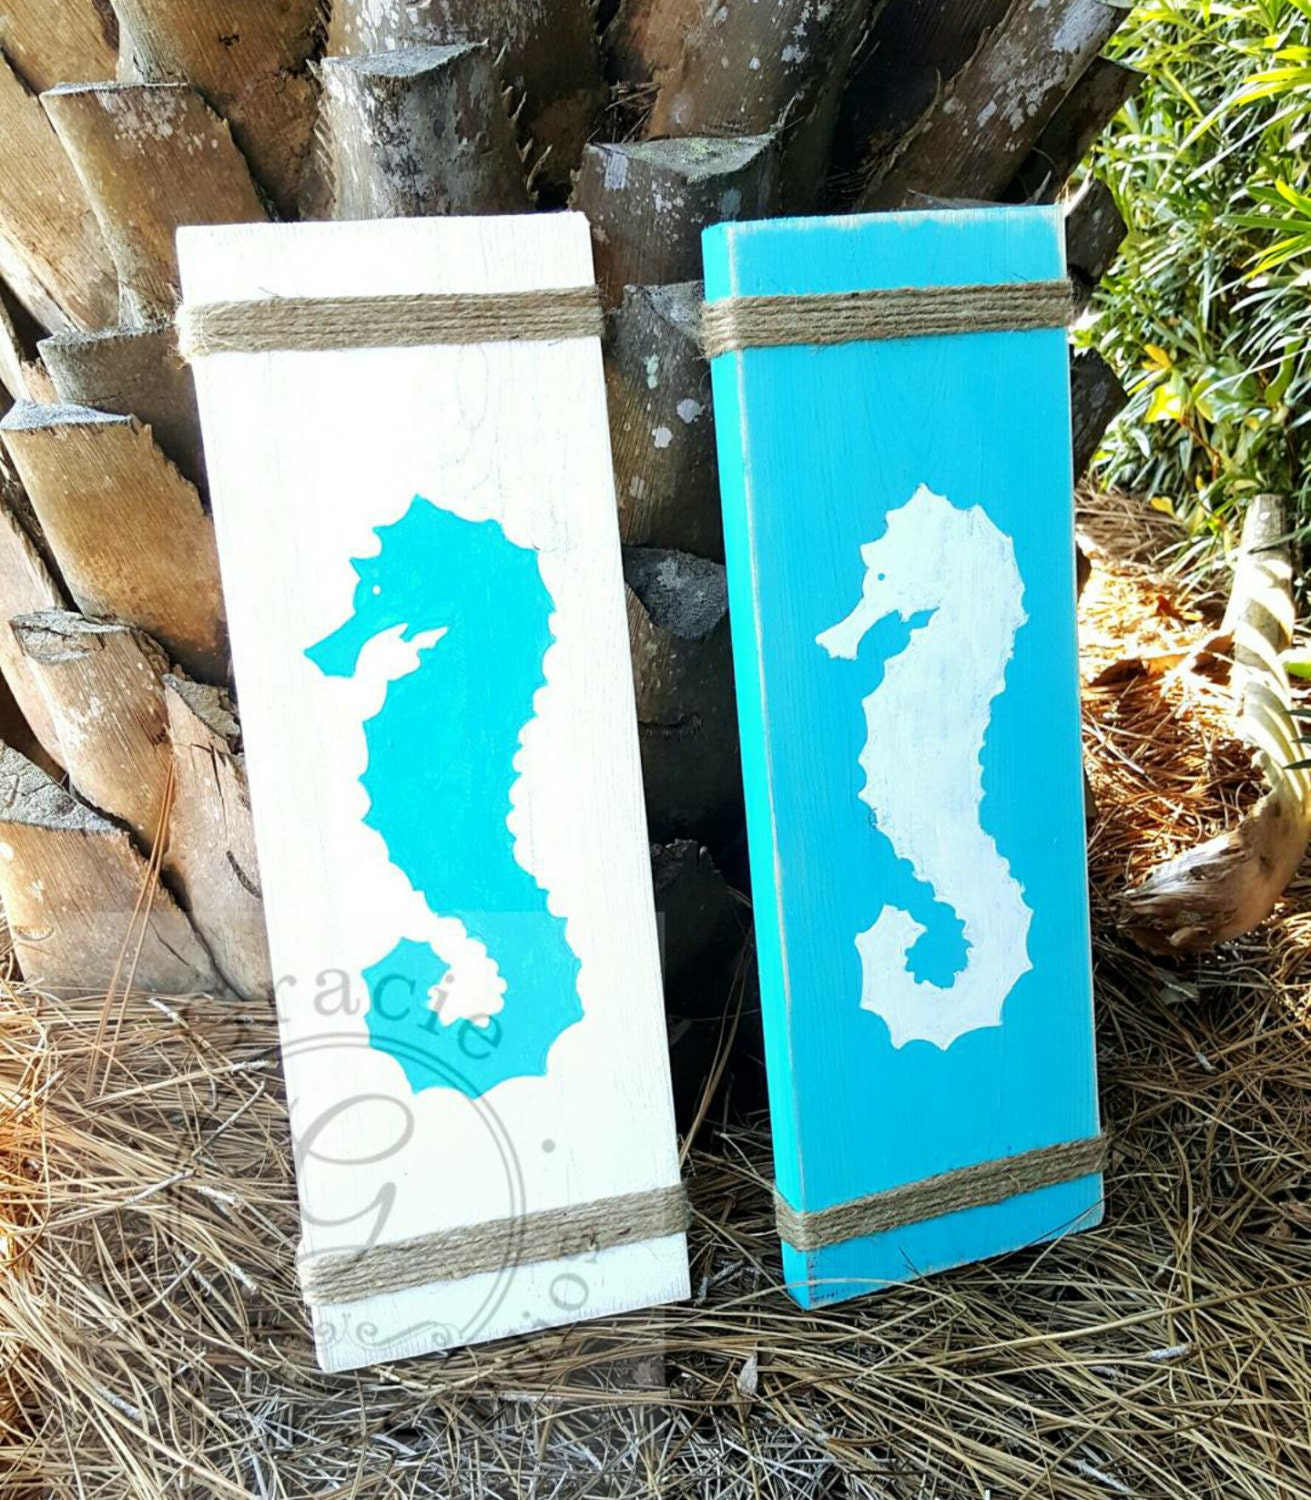 Pallet Art Reclaimed Wood Wall Art Beach House Decor Rustic : beach wood wall art - www.pureclipart.com